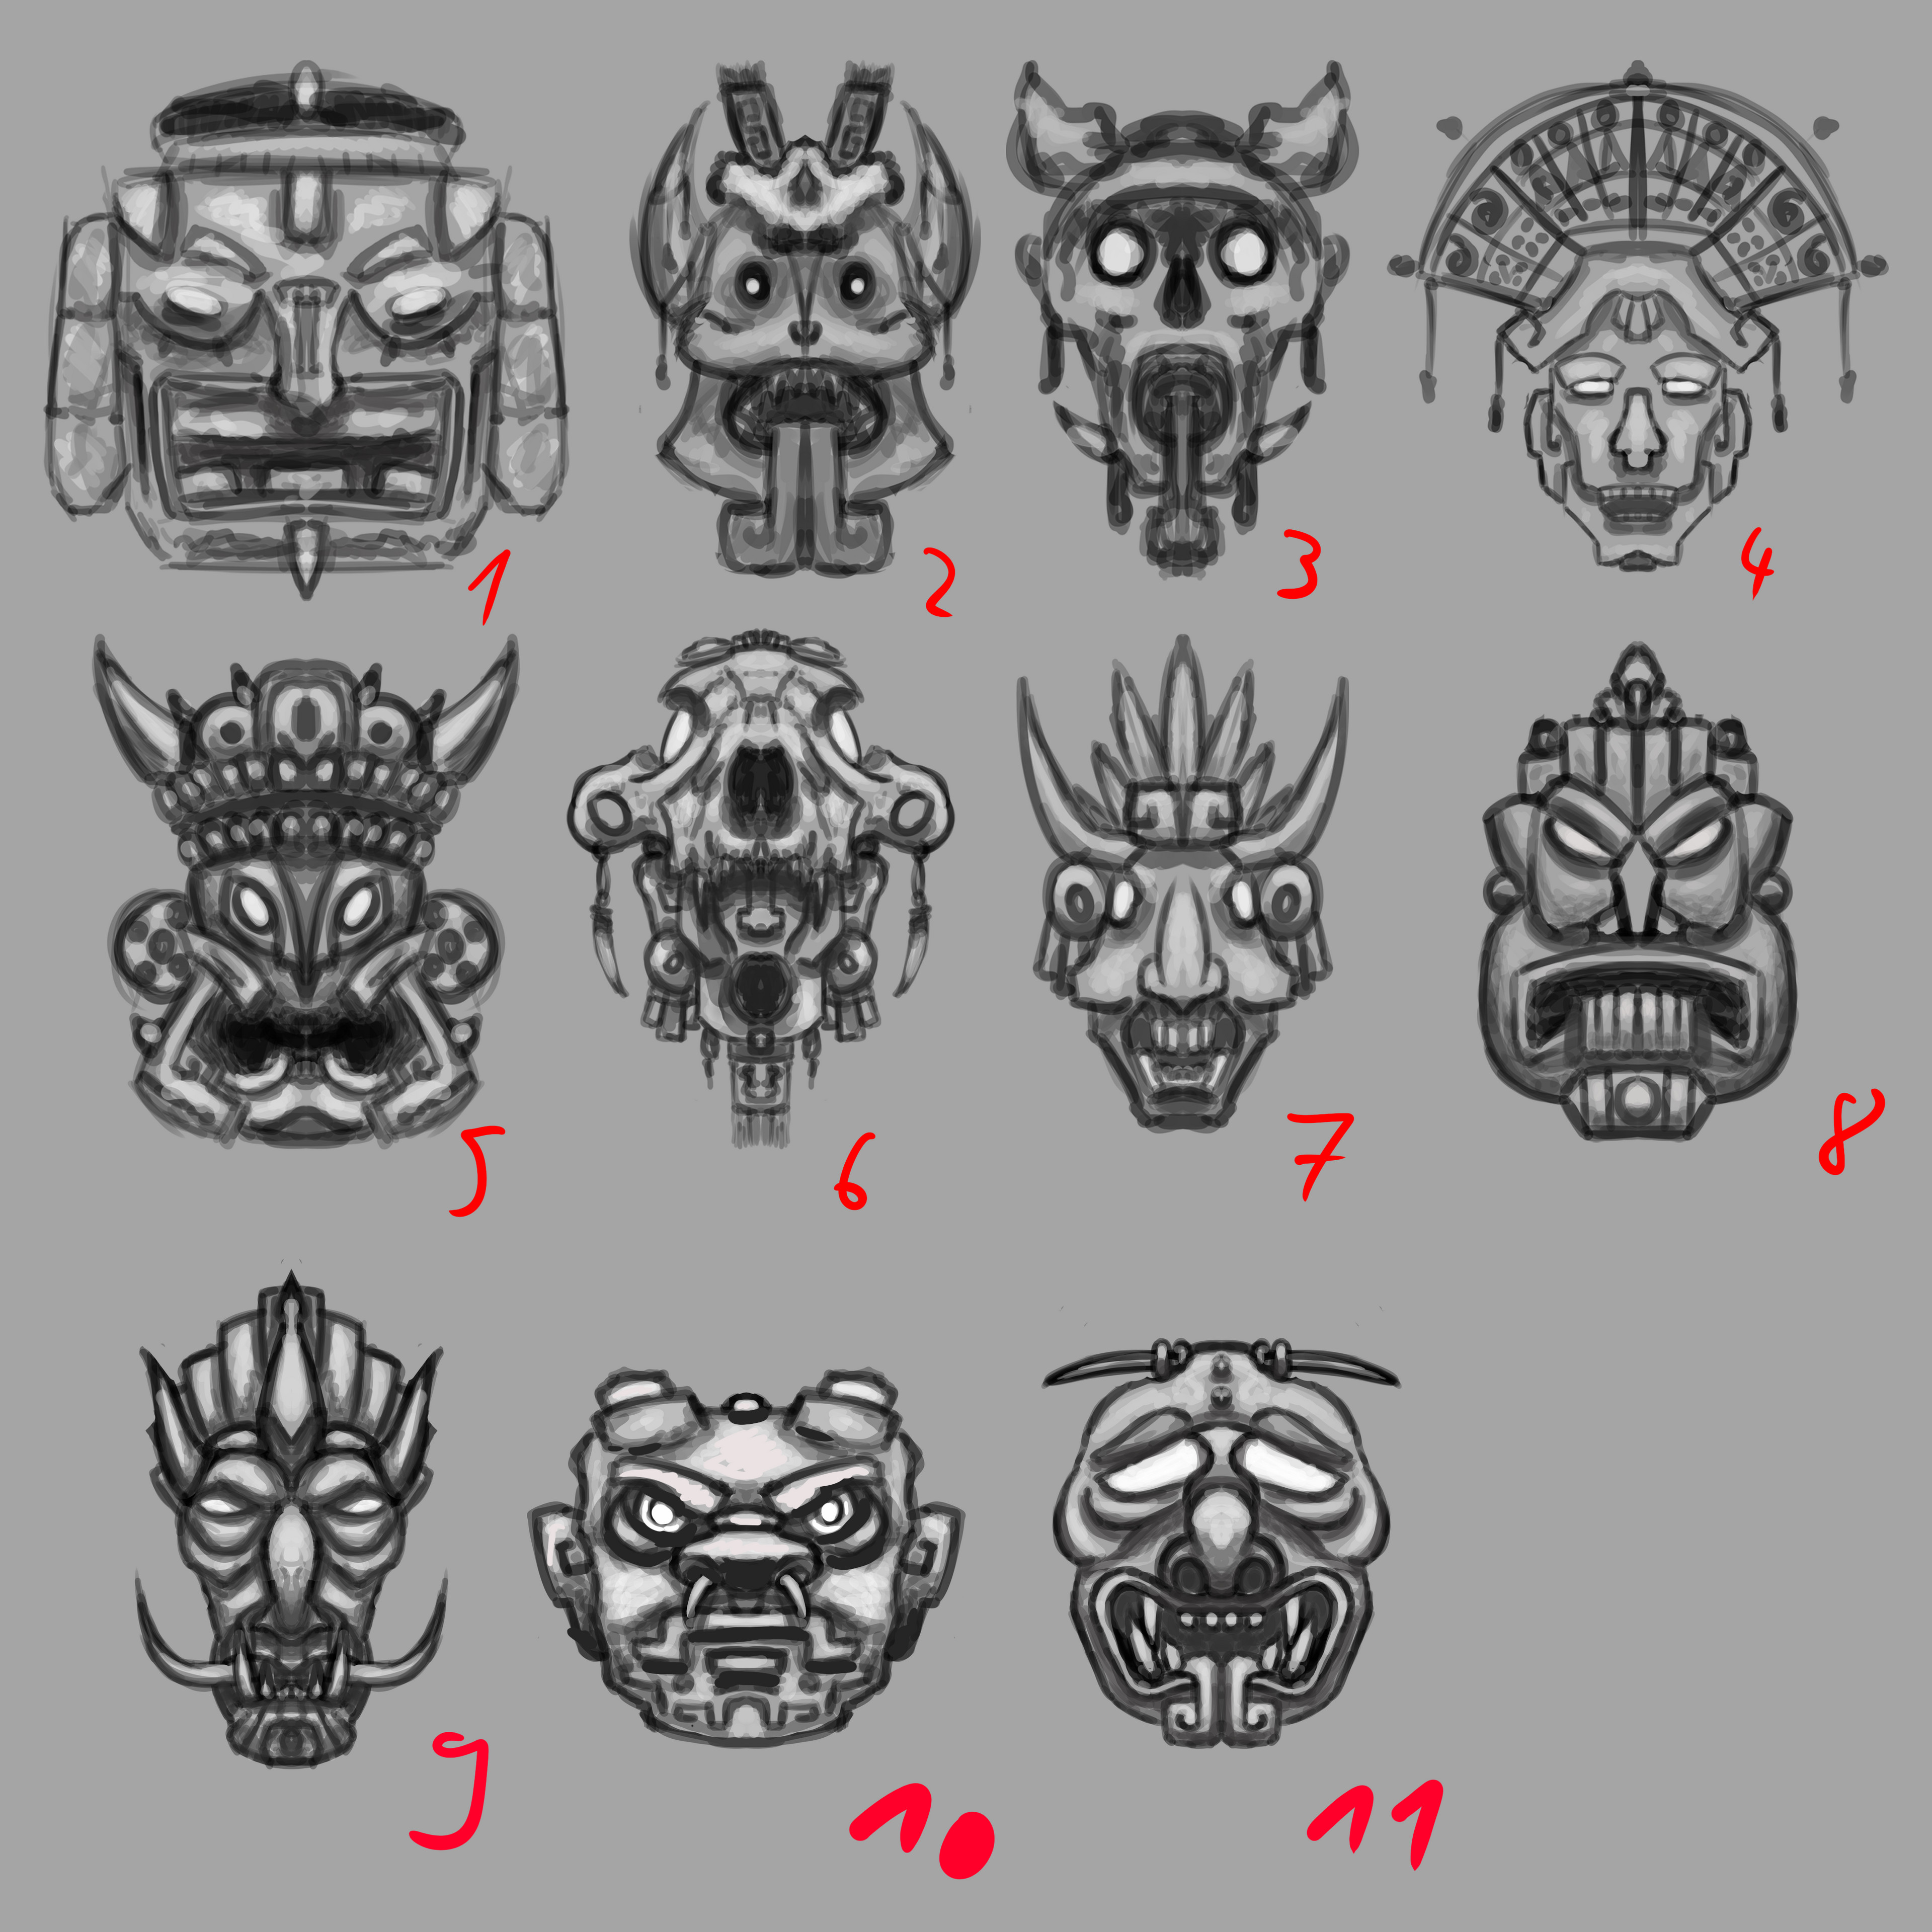 Mask Thumbnails for ideation and different kinds of golems.